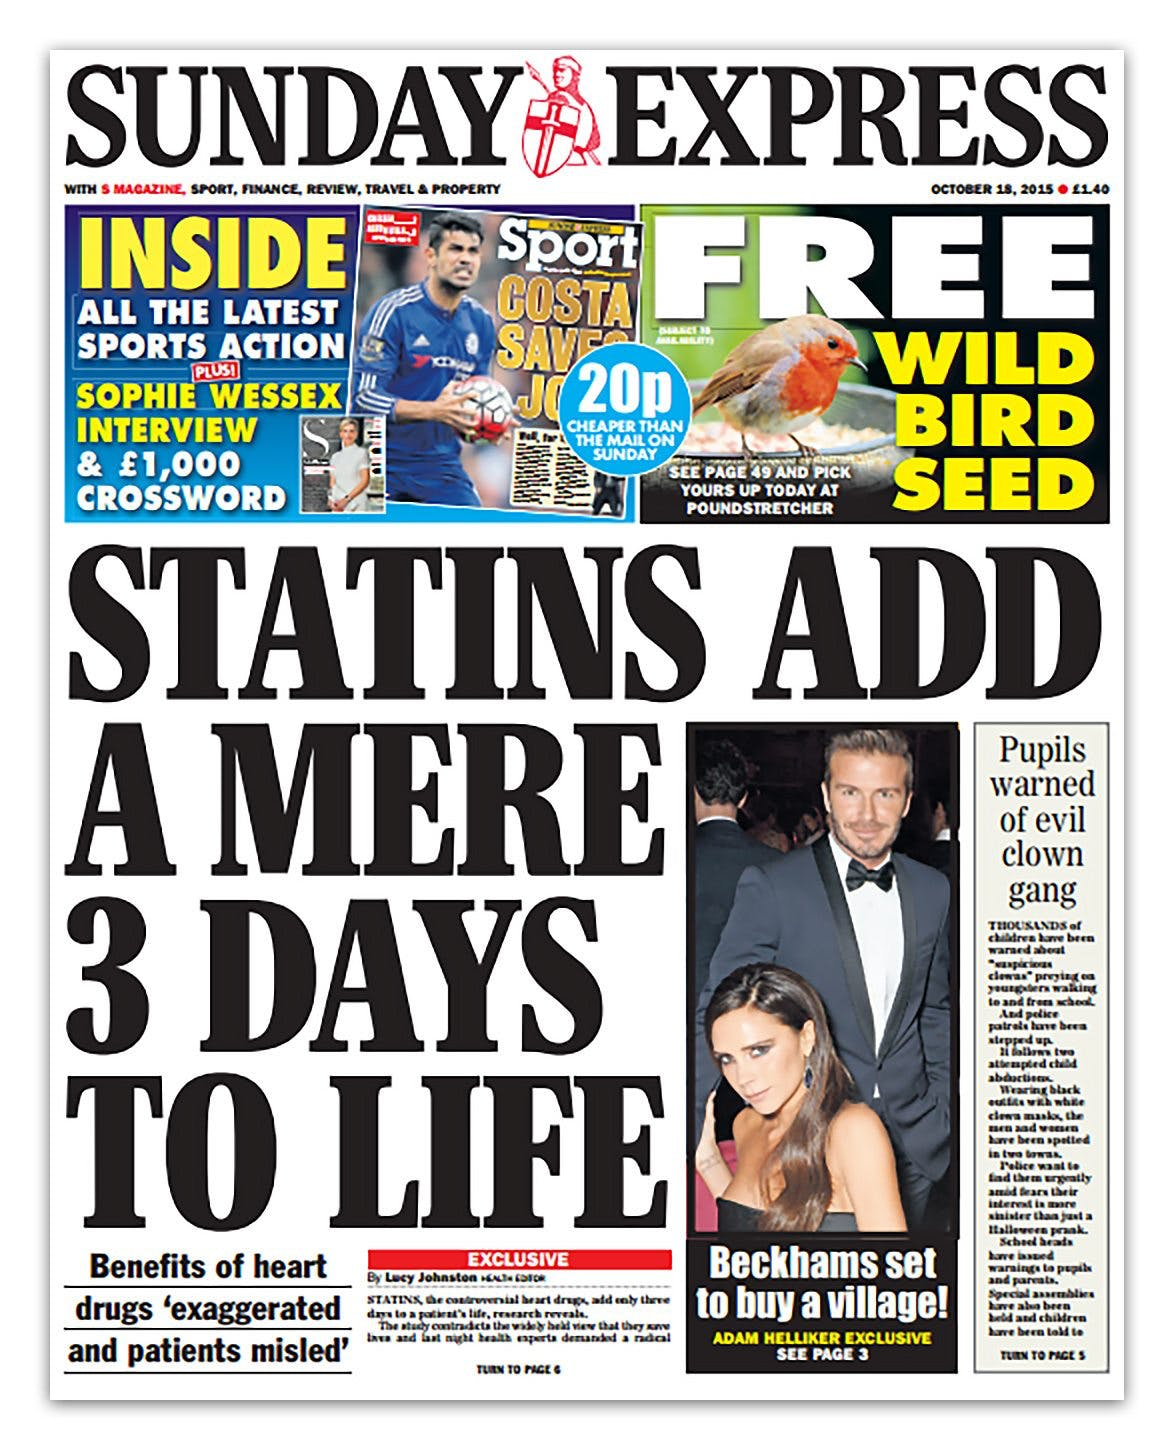 Big Headlines about Statins